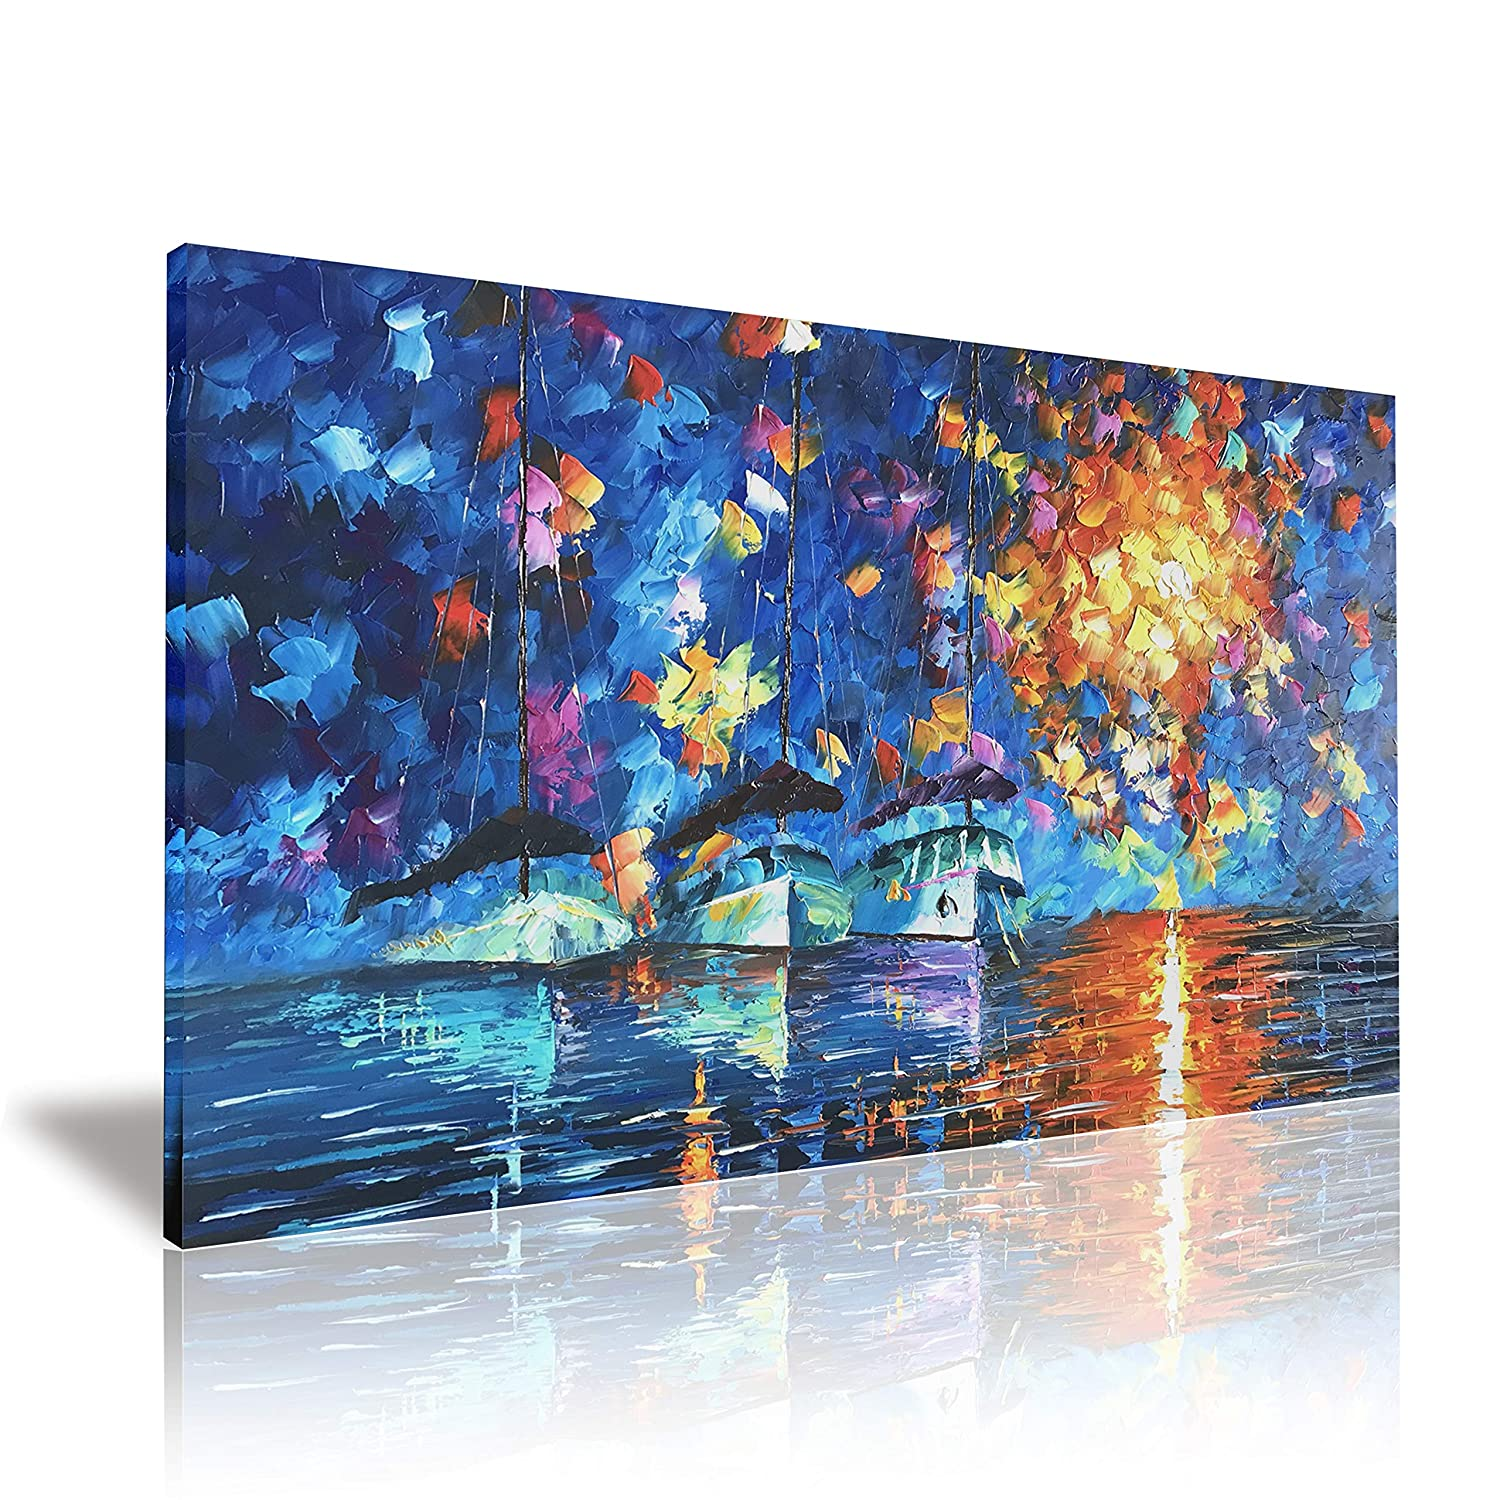 Yh-a04 24x36inch Zoyart 100% Hand Painted Abstract Oil Paintings on Canvas Wall Art Ballet Dancers 2 Pieces Contemporary Paintings Wall Decorations for Living Room Bedroom Decor Ready to Hang 24x20inchx2